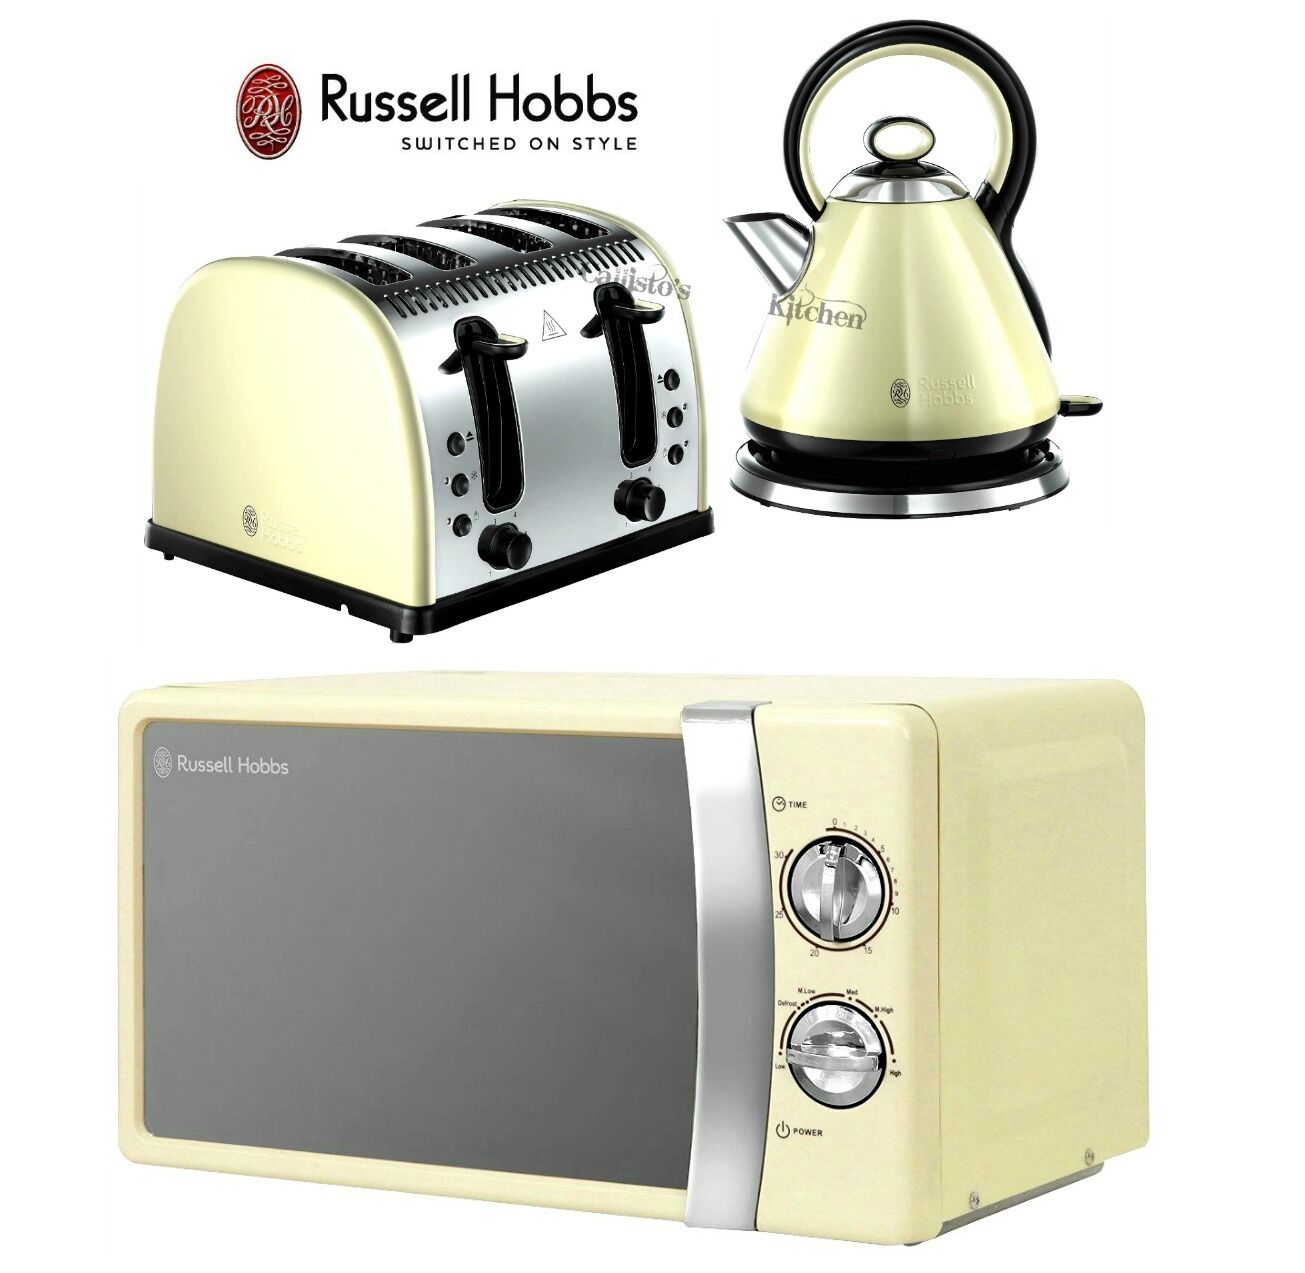 russell hobbs microwave kettle and toaster set legacy kettle 4 slice toaster. Black Bedroom Furniture Sets. Home Design Ideas